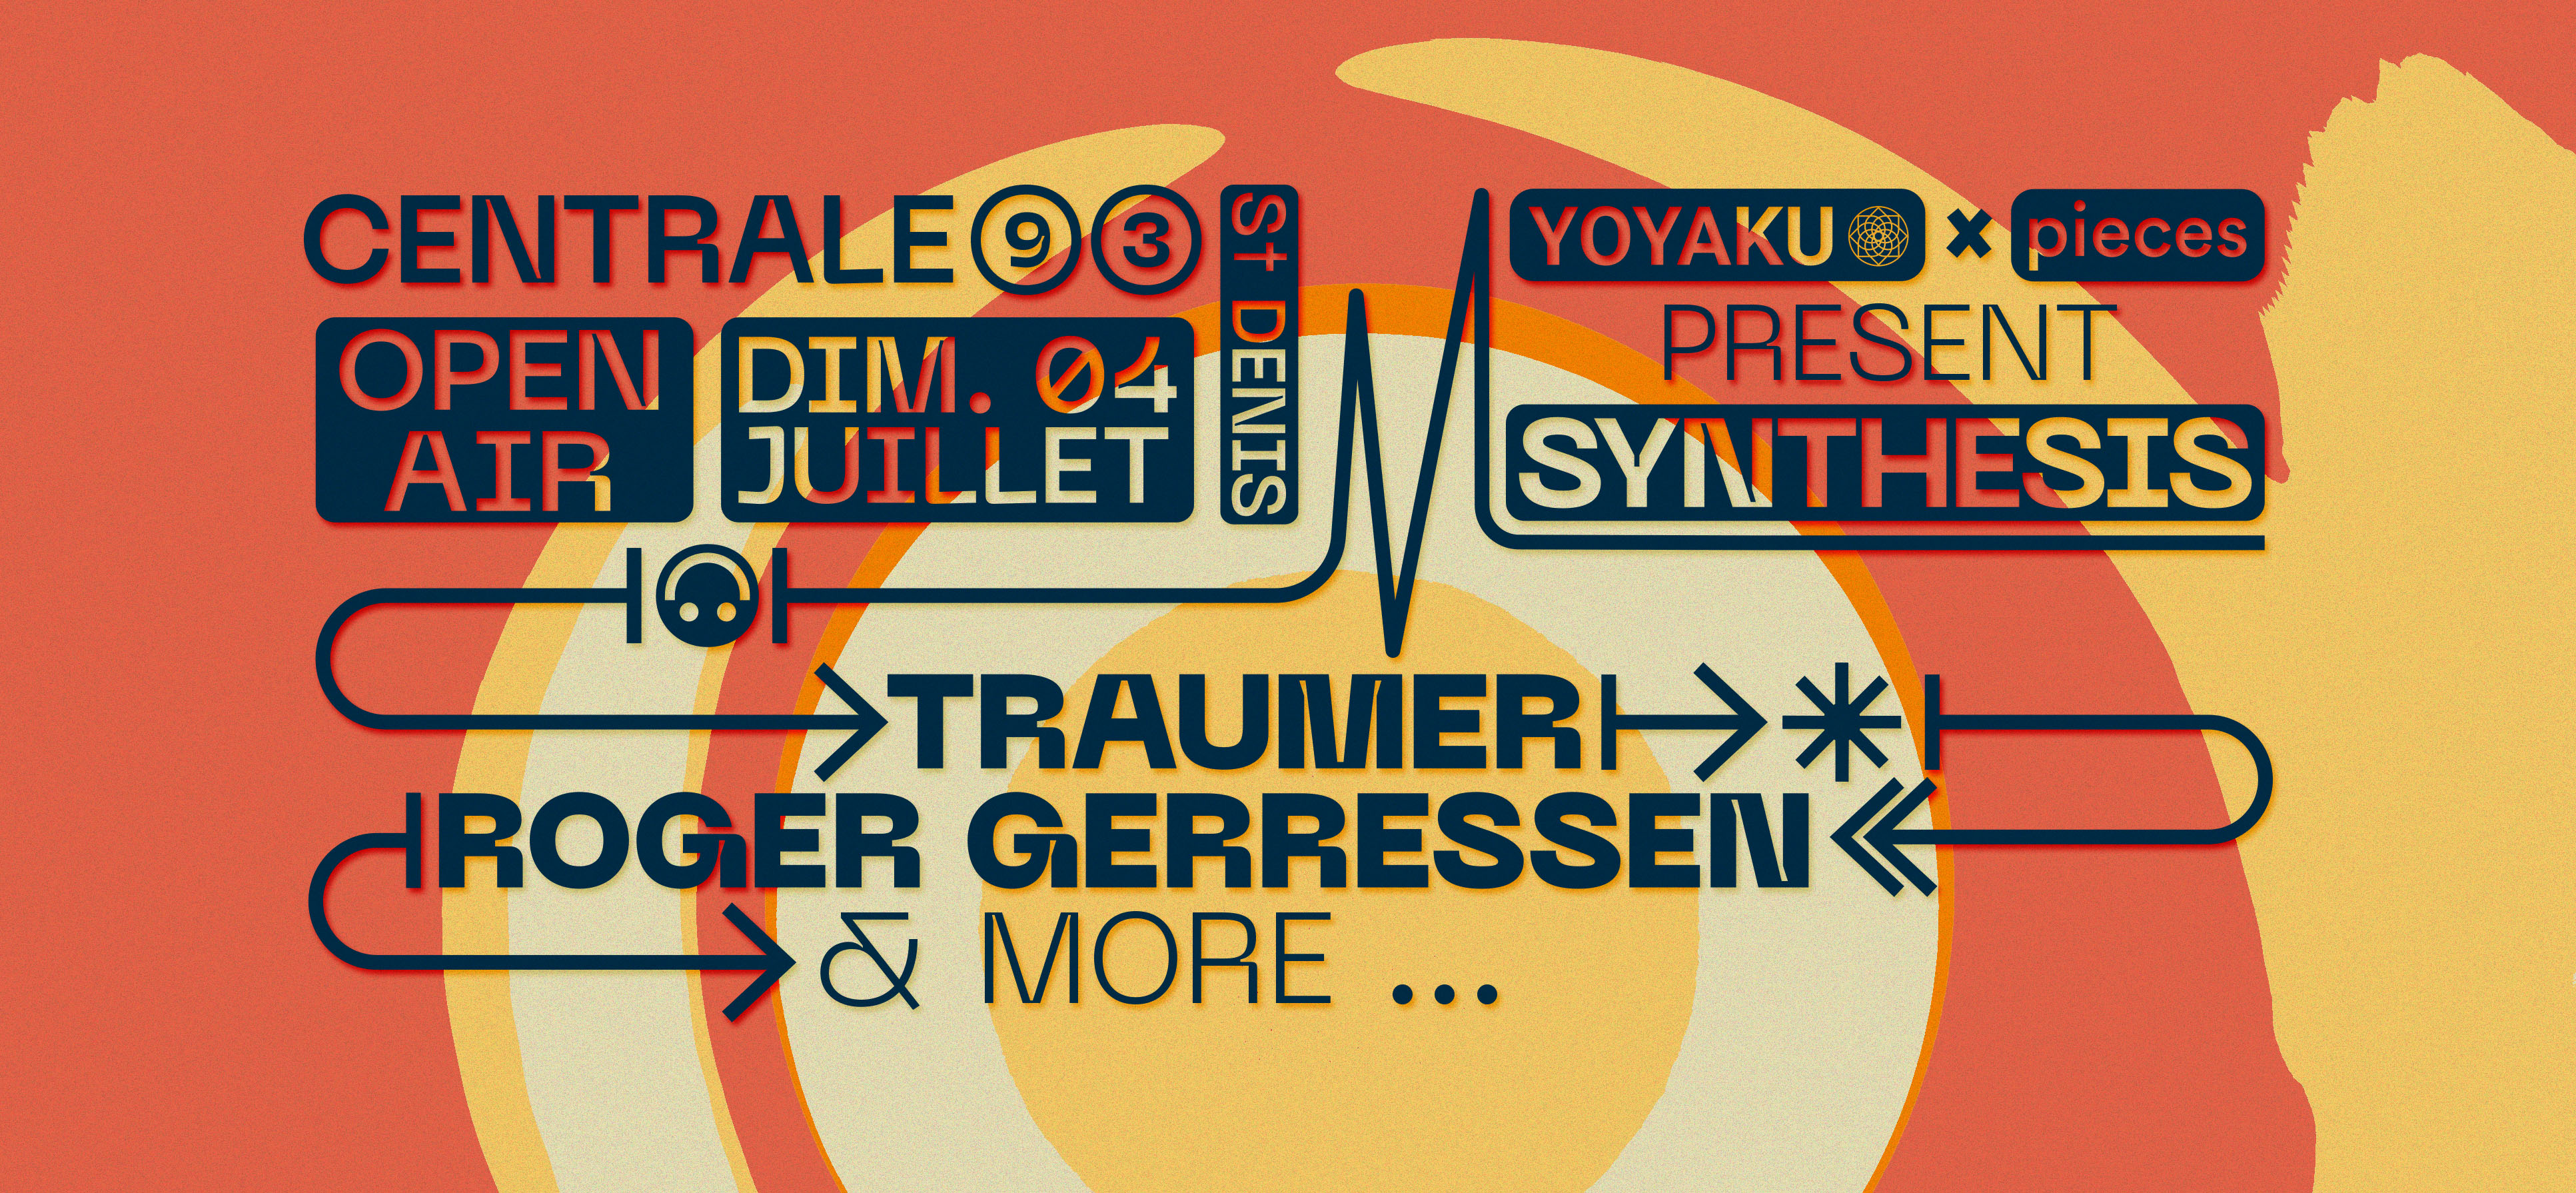 Centrale93 Open Air Synthesis : Traumer, Roger Gerressen & more